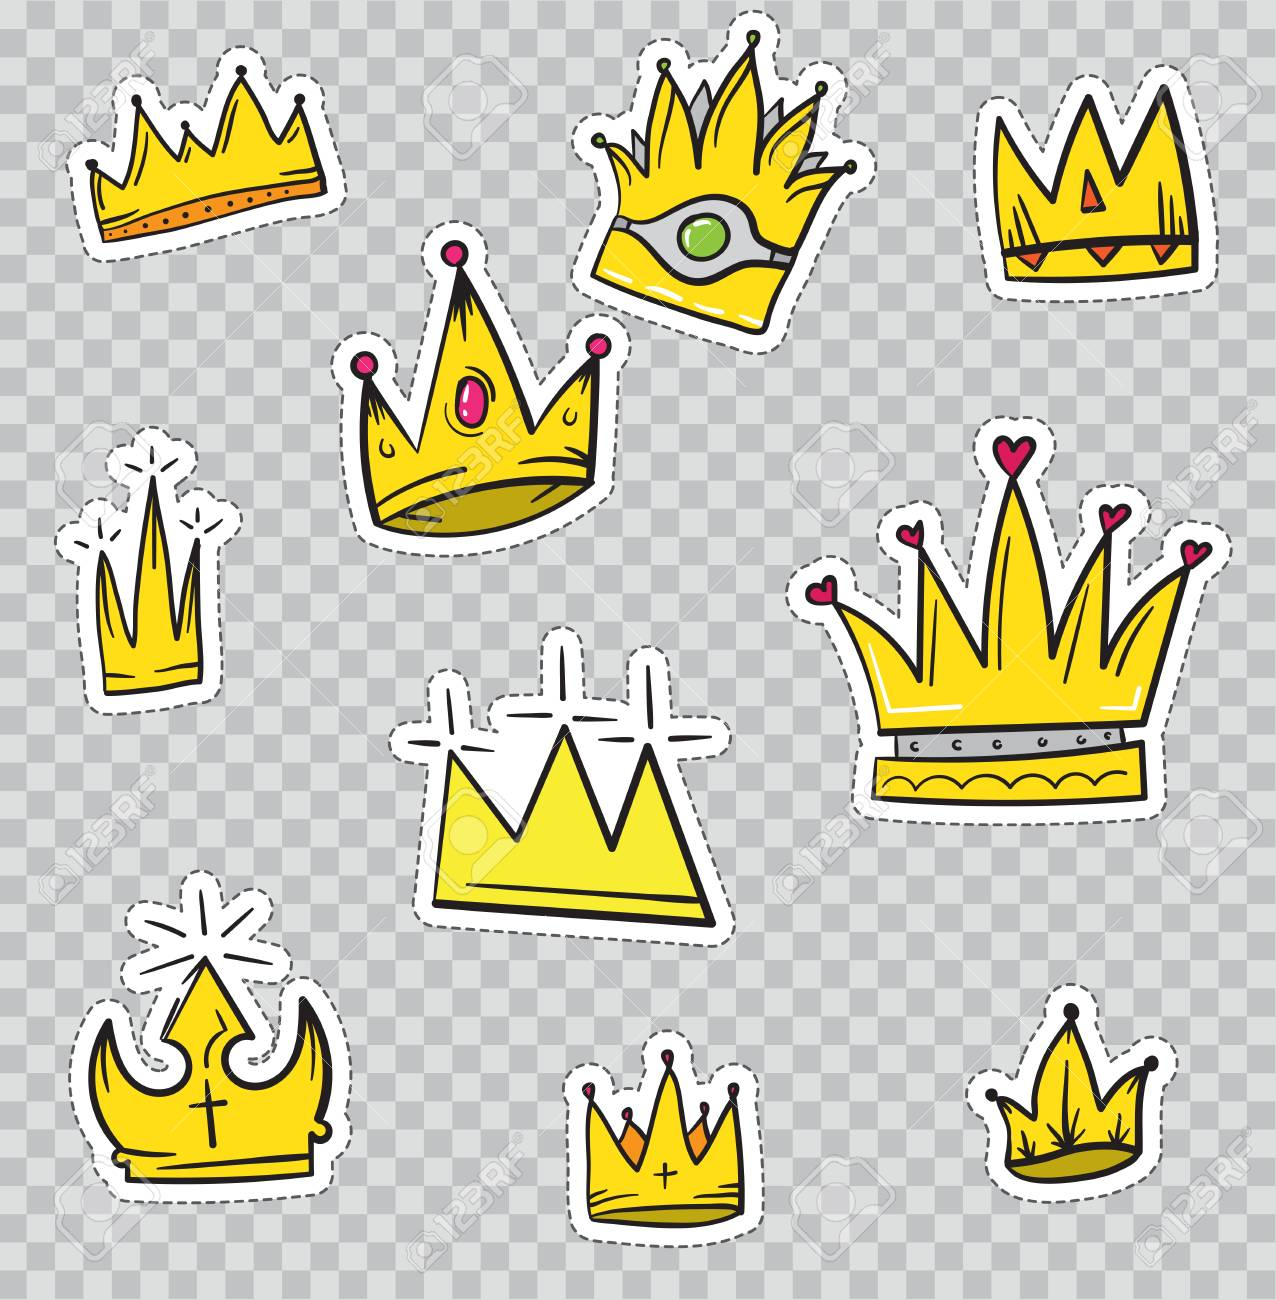 Patch Badges With Crowns Vector Illustration Isolated On Transparent Royalty Free Cliparts Vectors And Stock Illustration Image 77835164 Browse and download hd crown png images with transparent background for free. patch badges with crowns vector illustration isolated on transparent